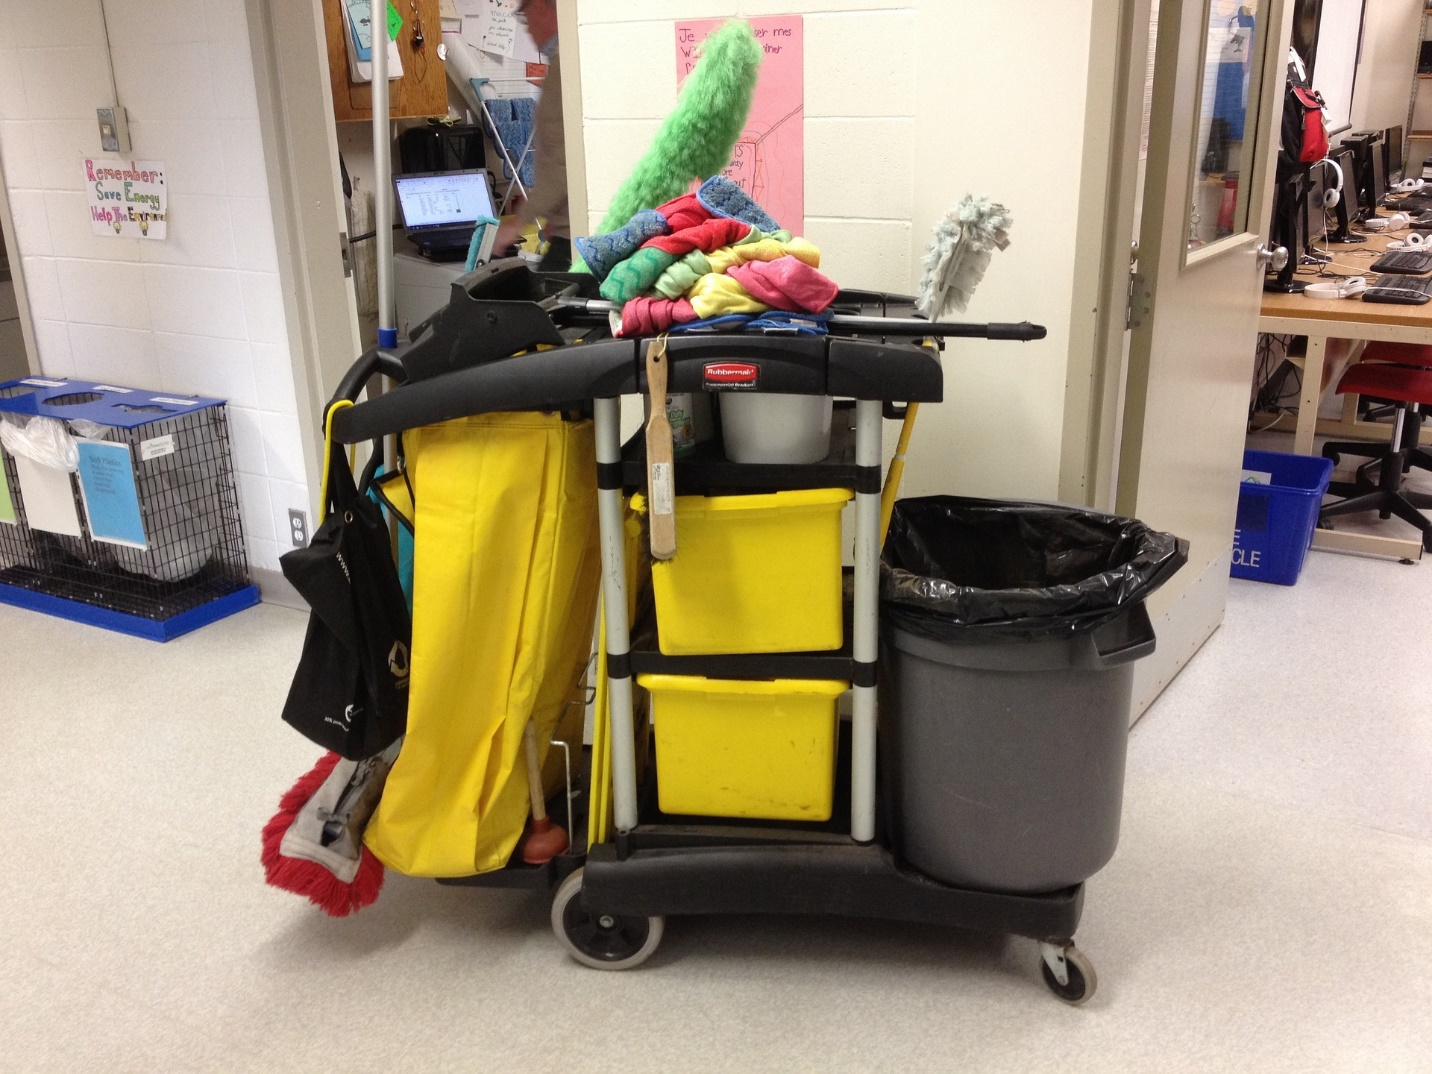 Janitorial service equipment